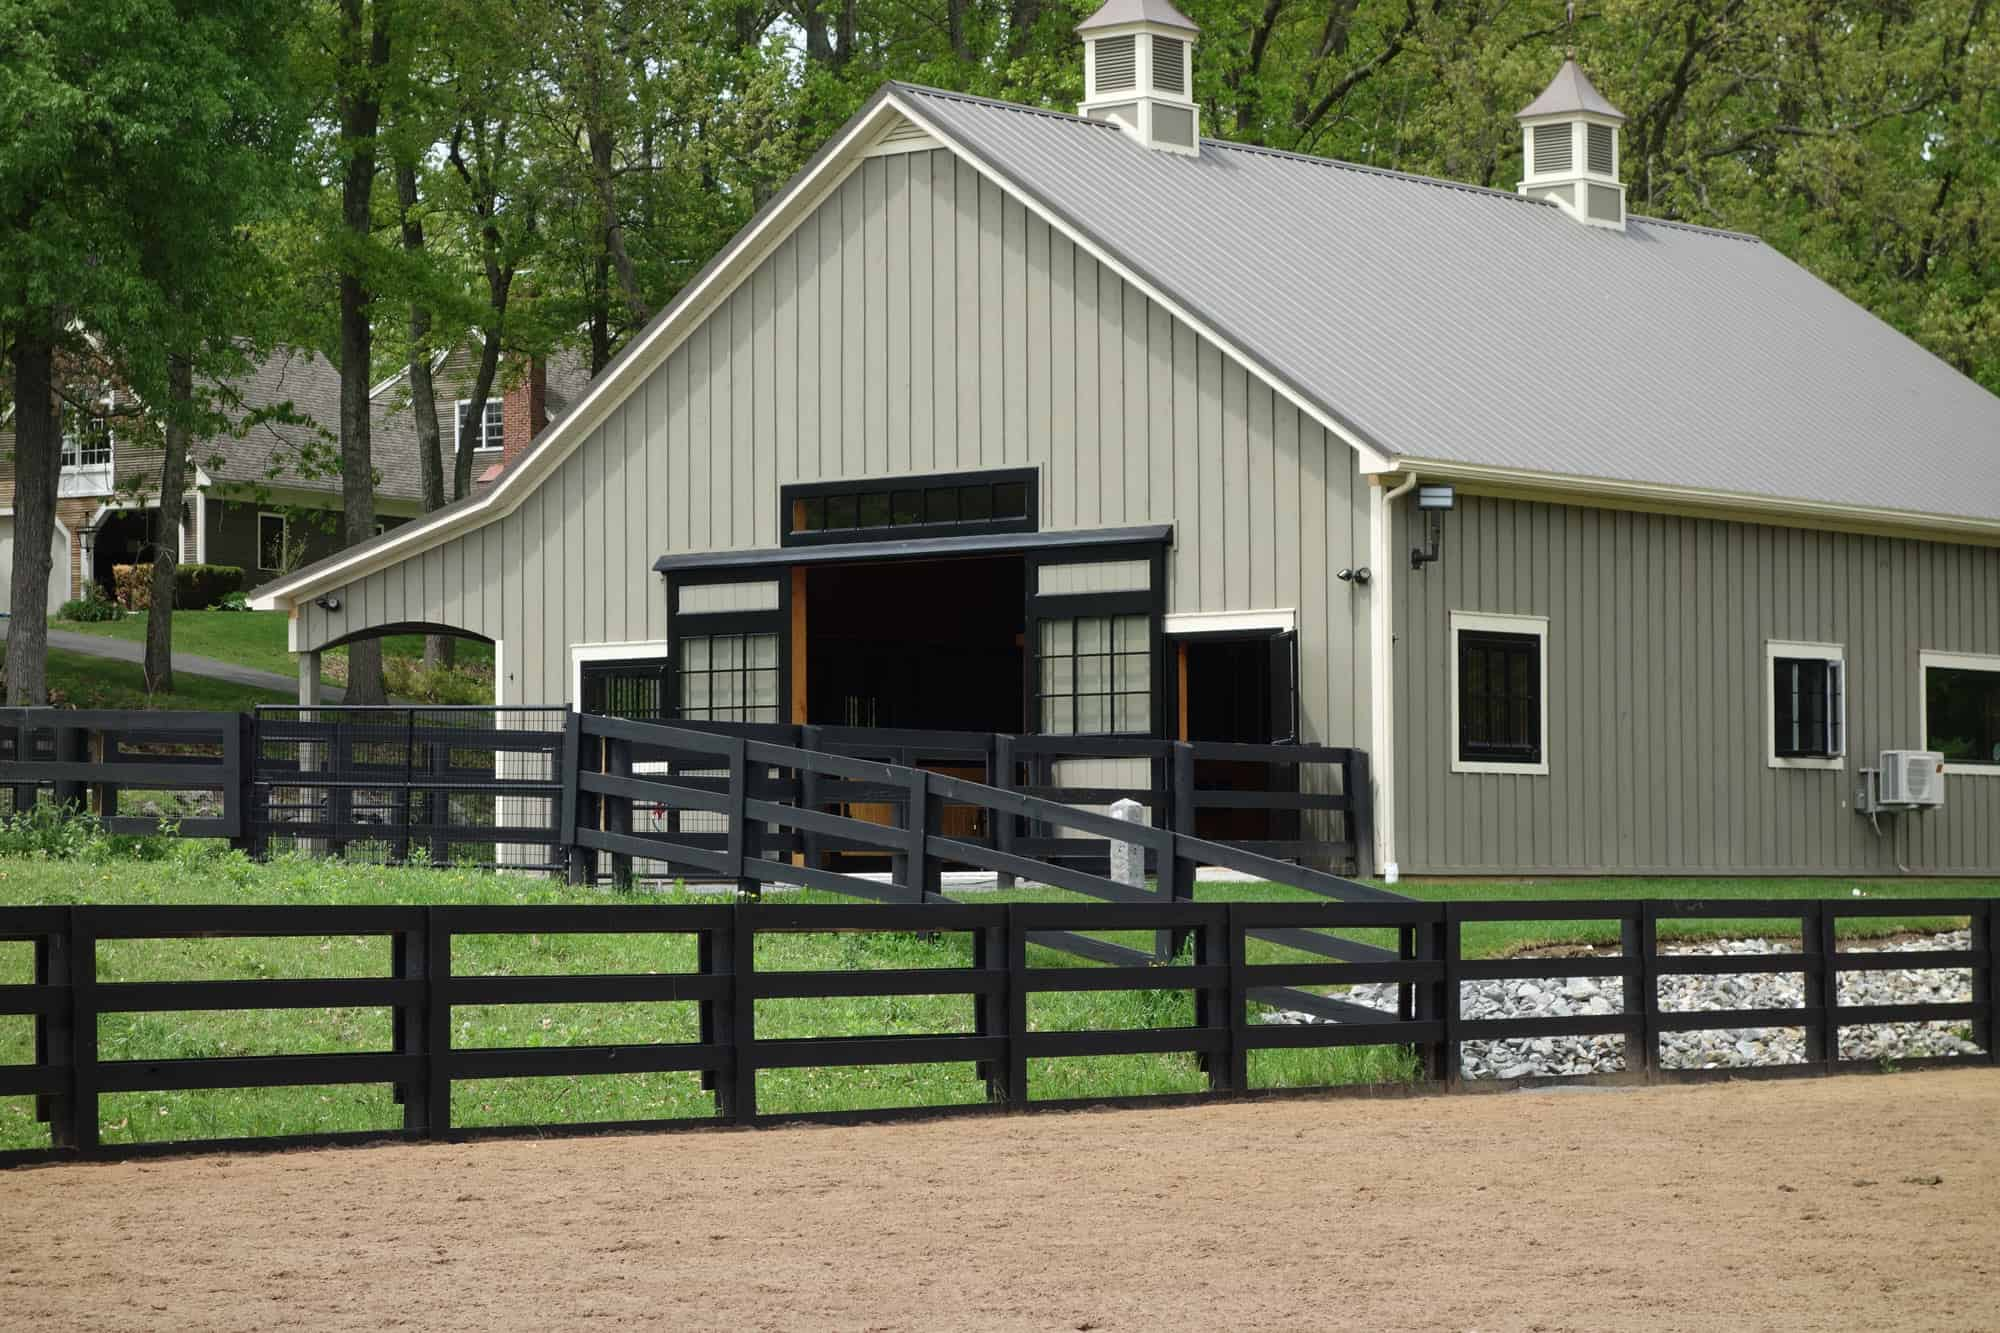 cupola metal roof horse stalls black fence